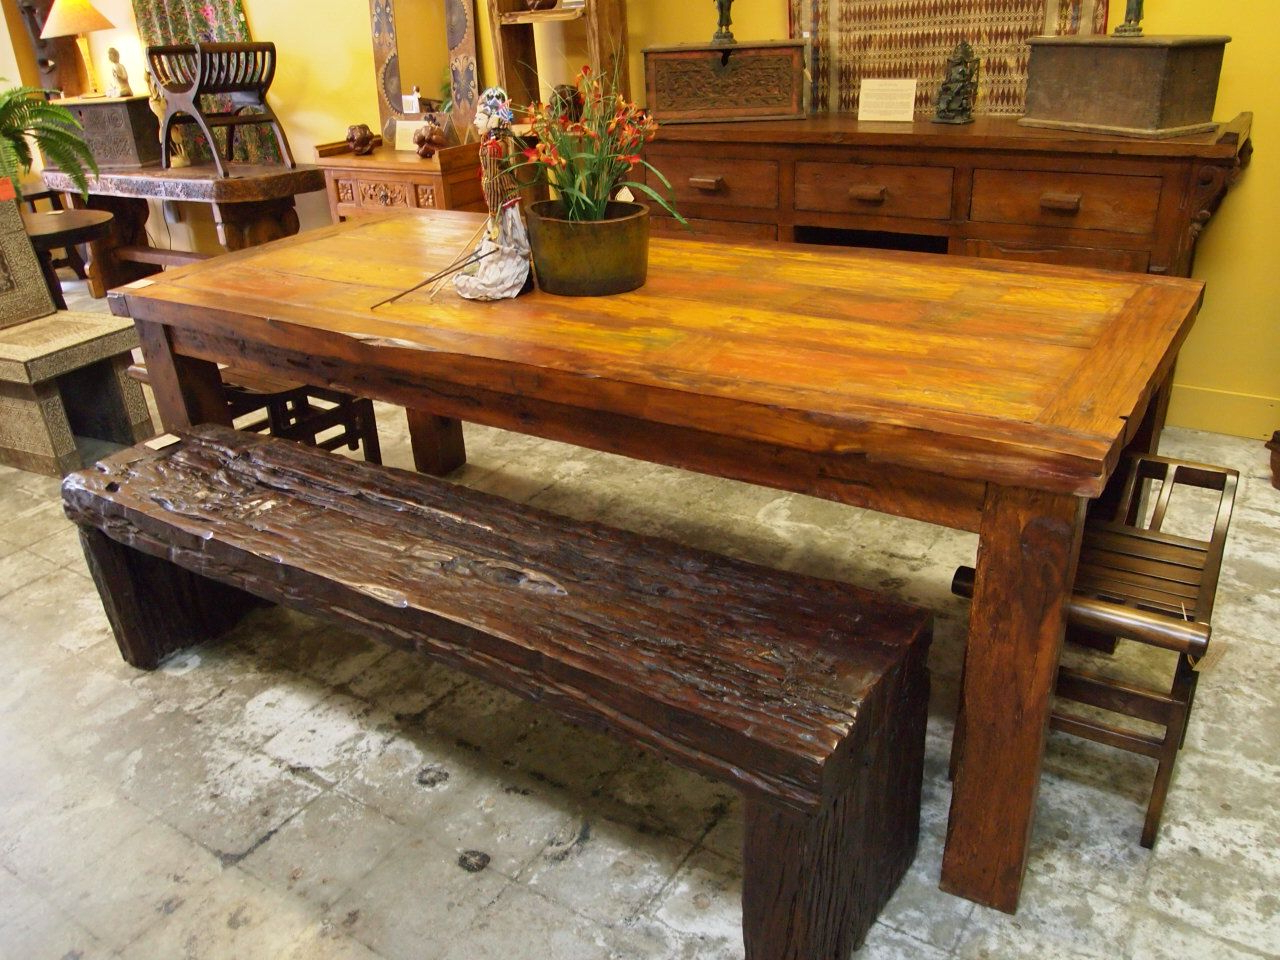 Iron Wood Dining Tables throughout Most Current Reclaimed Wood Dining Table & Rustic Ironwood Bench. Visit